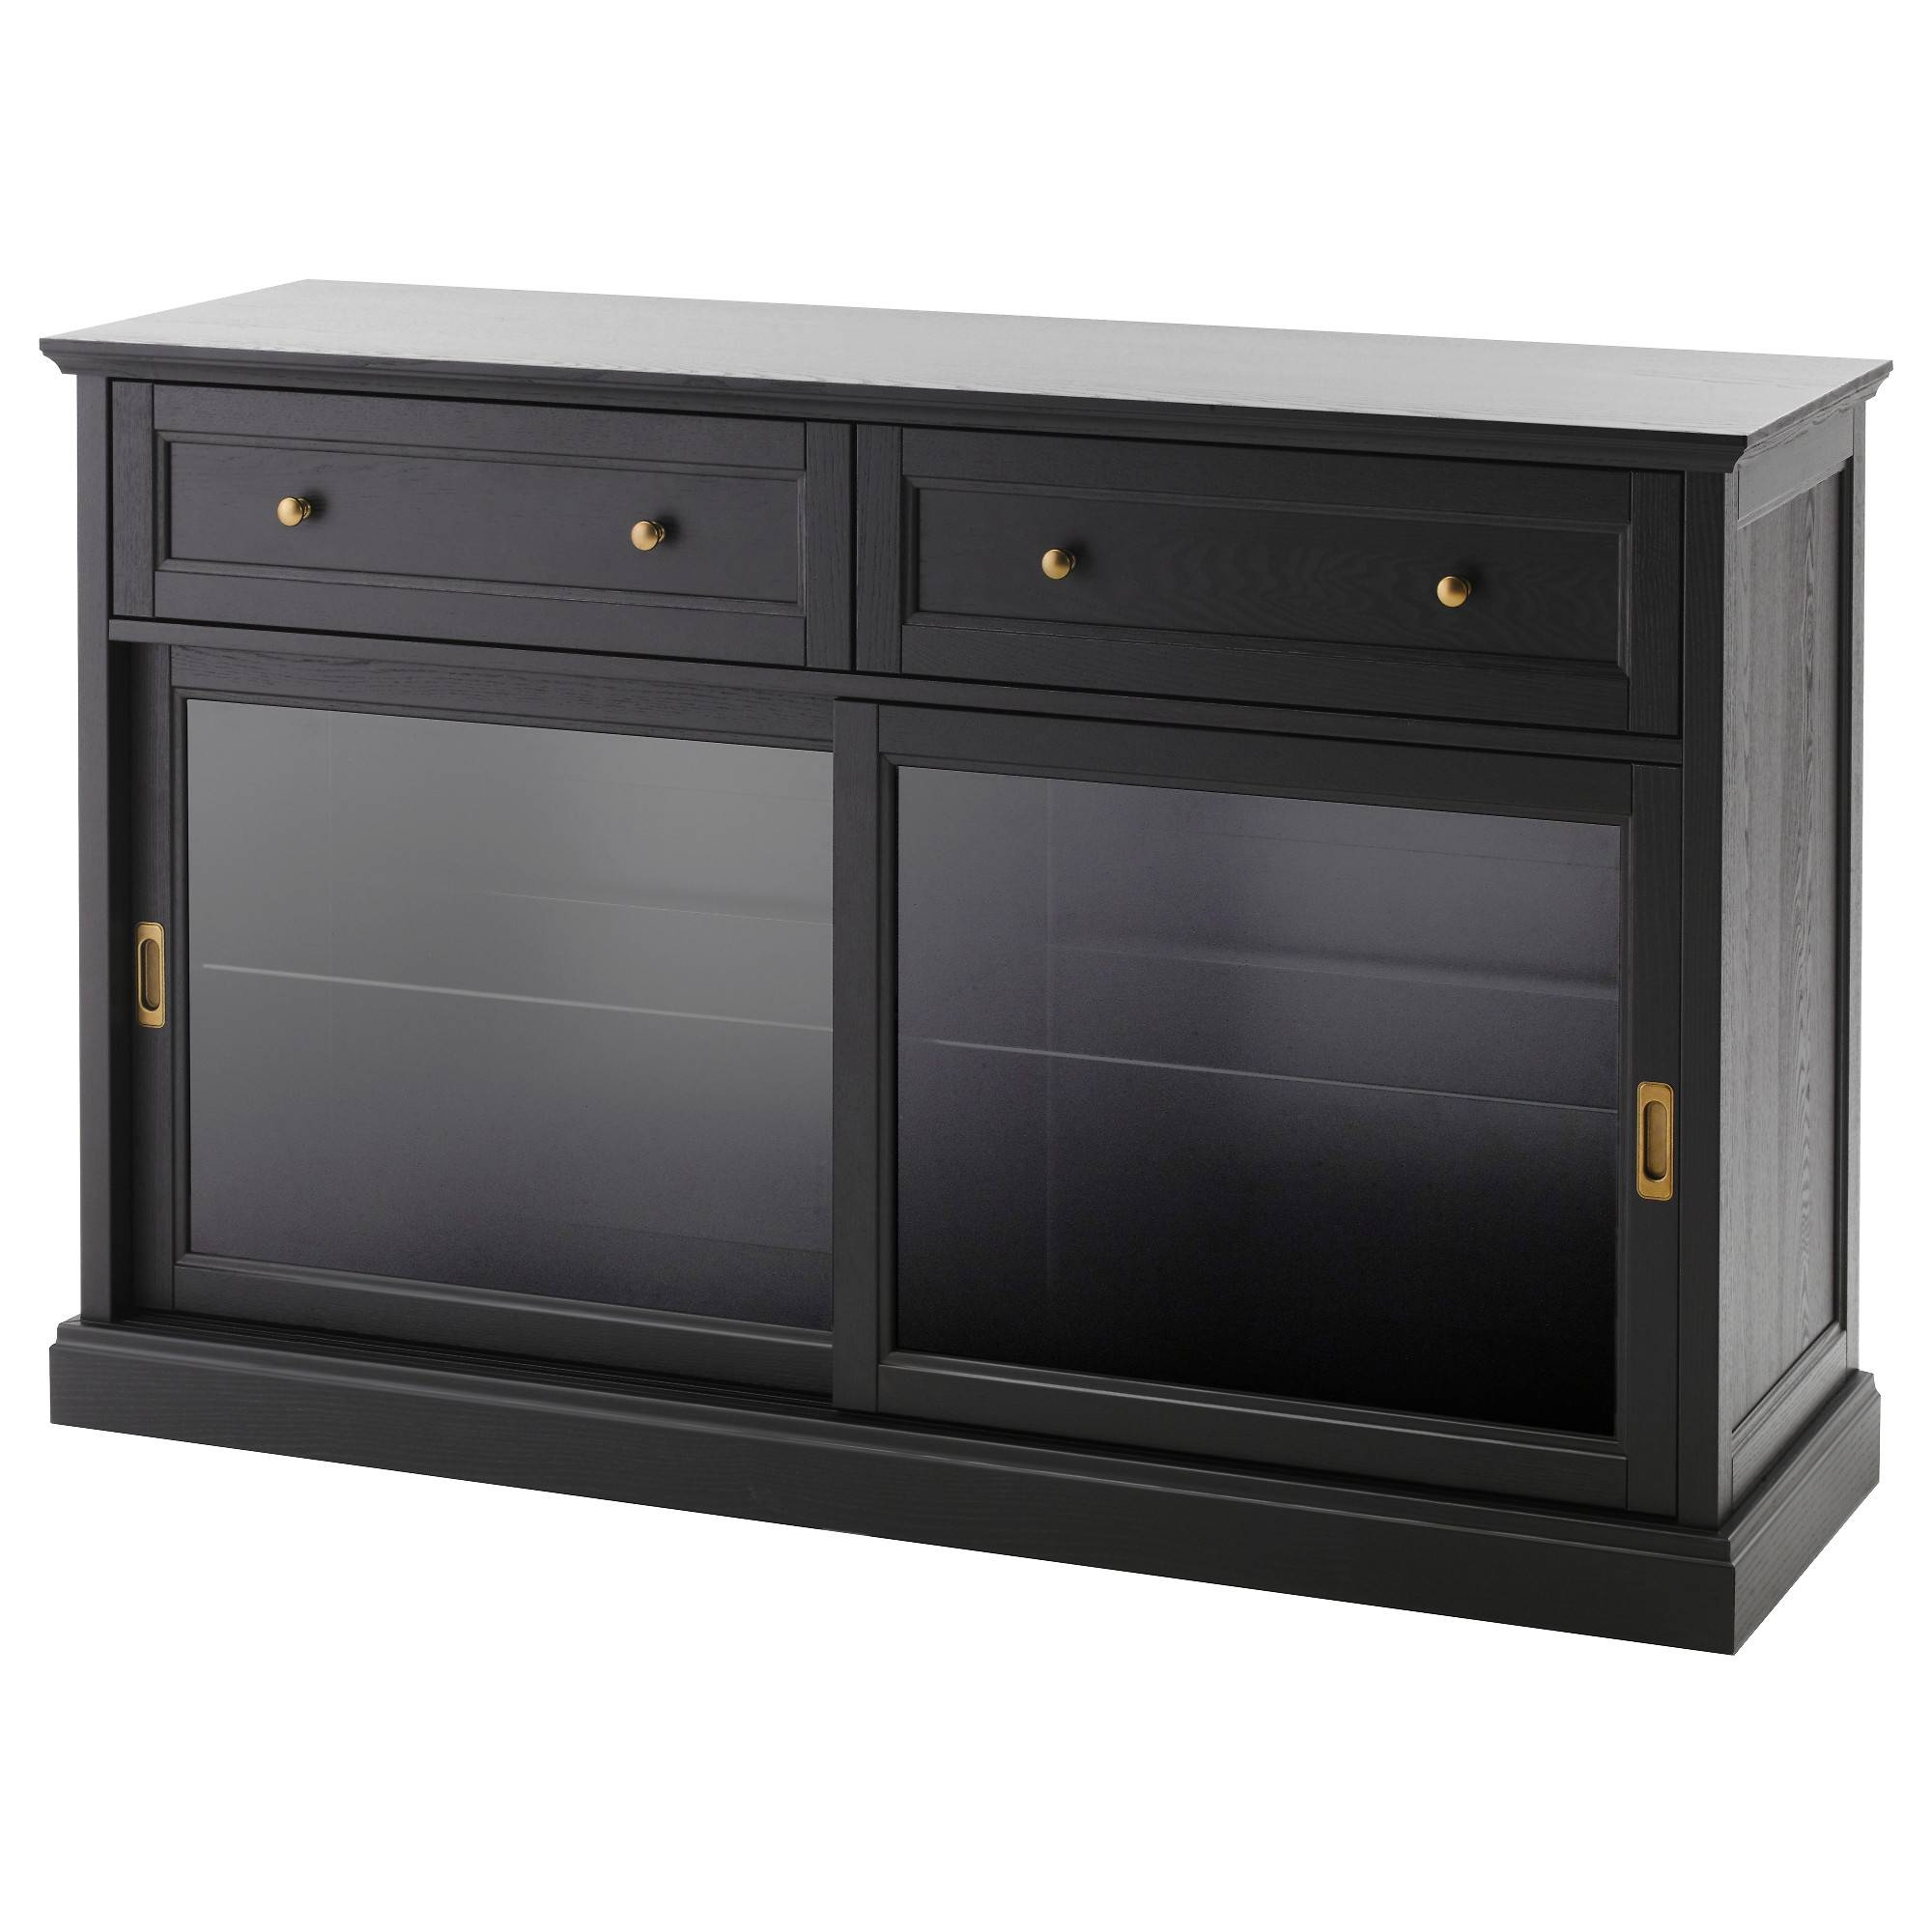 Sideboards & Buffet Cabinets | Ikea Throughout Slim White Sideboards (View 12 of 15)